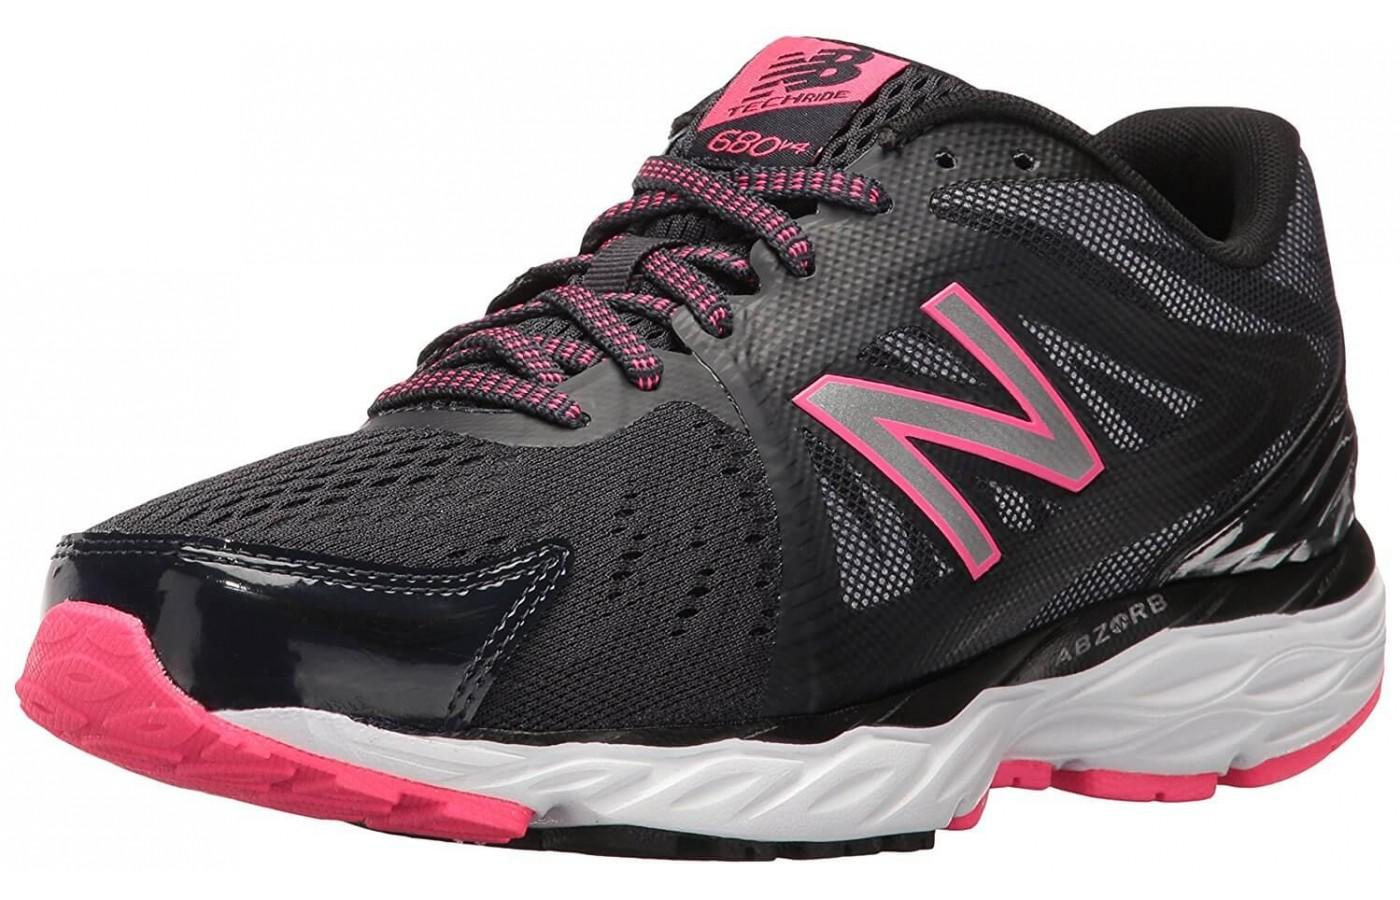 The New Balance 680V4 in black and pink